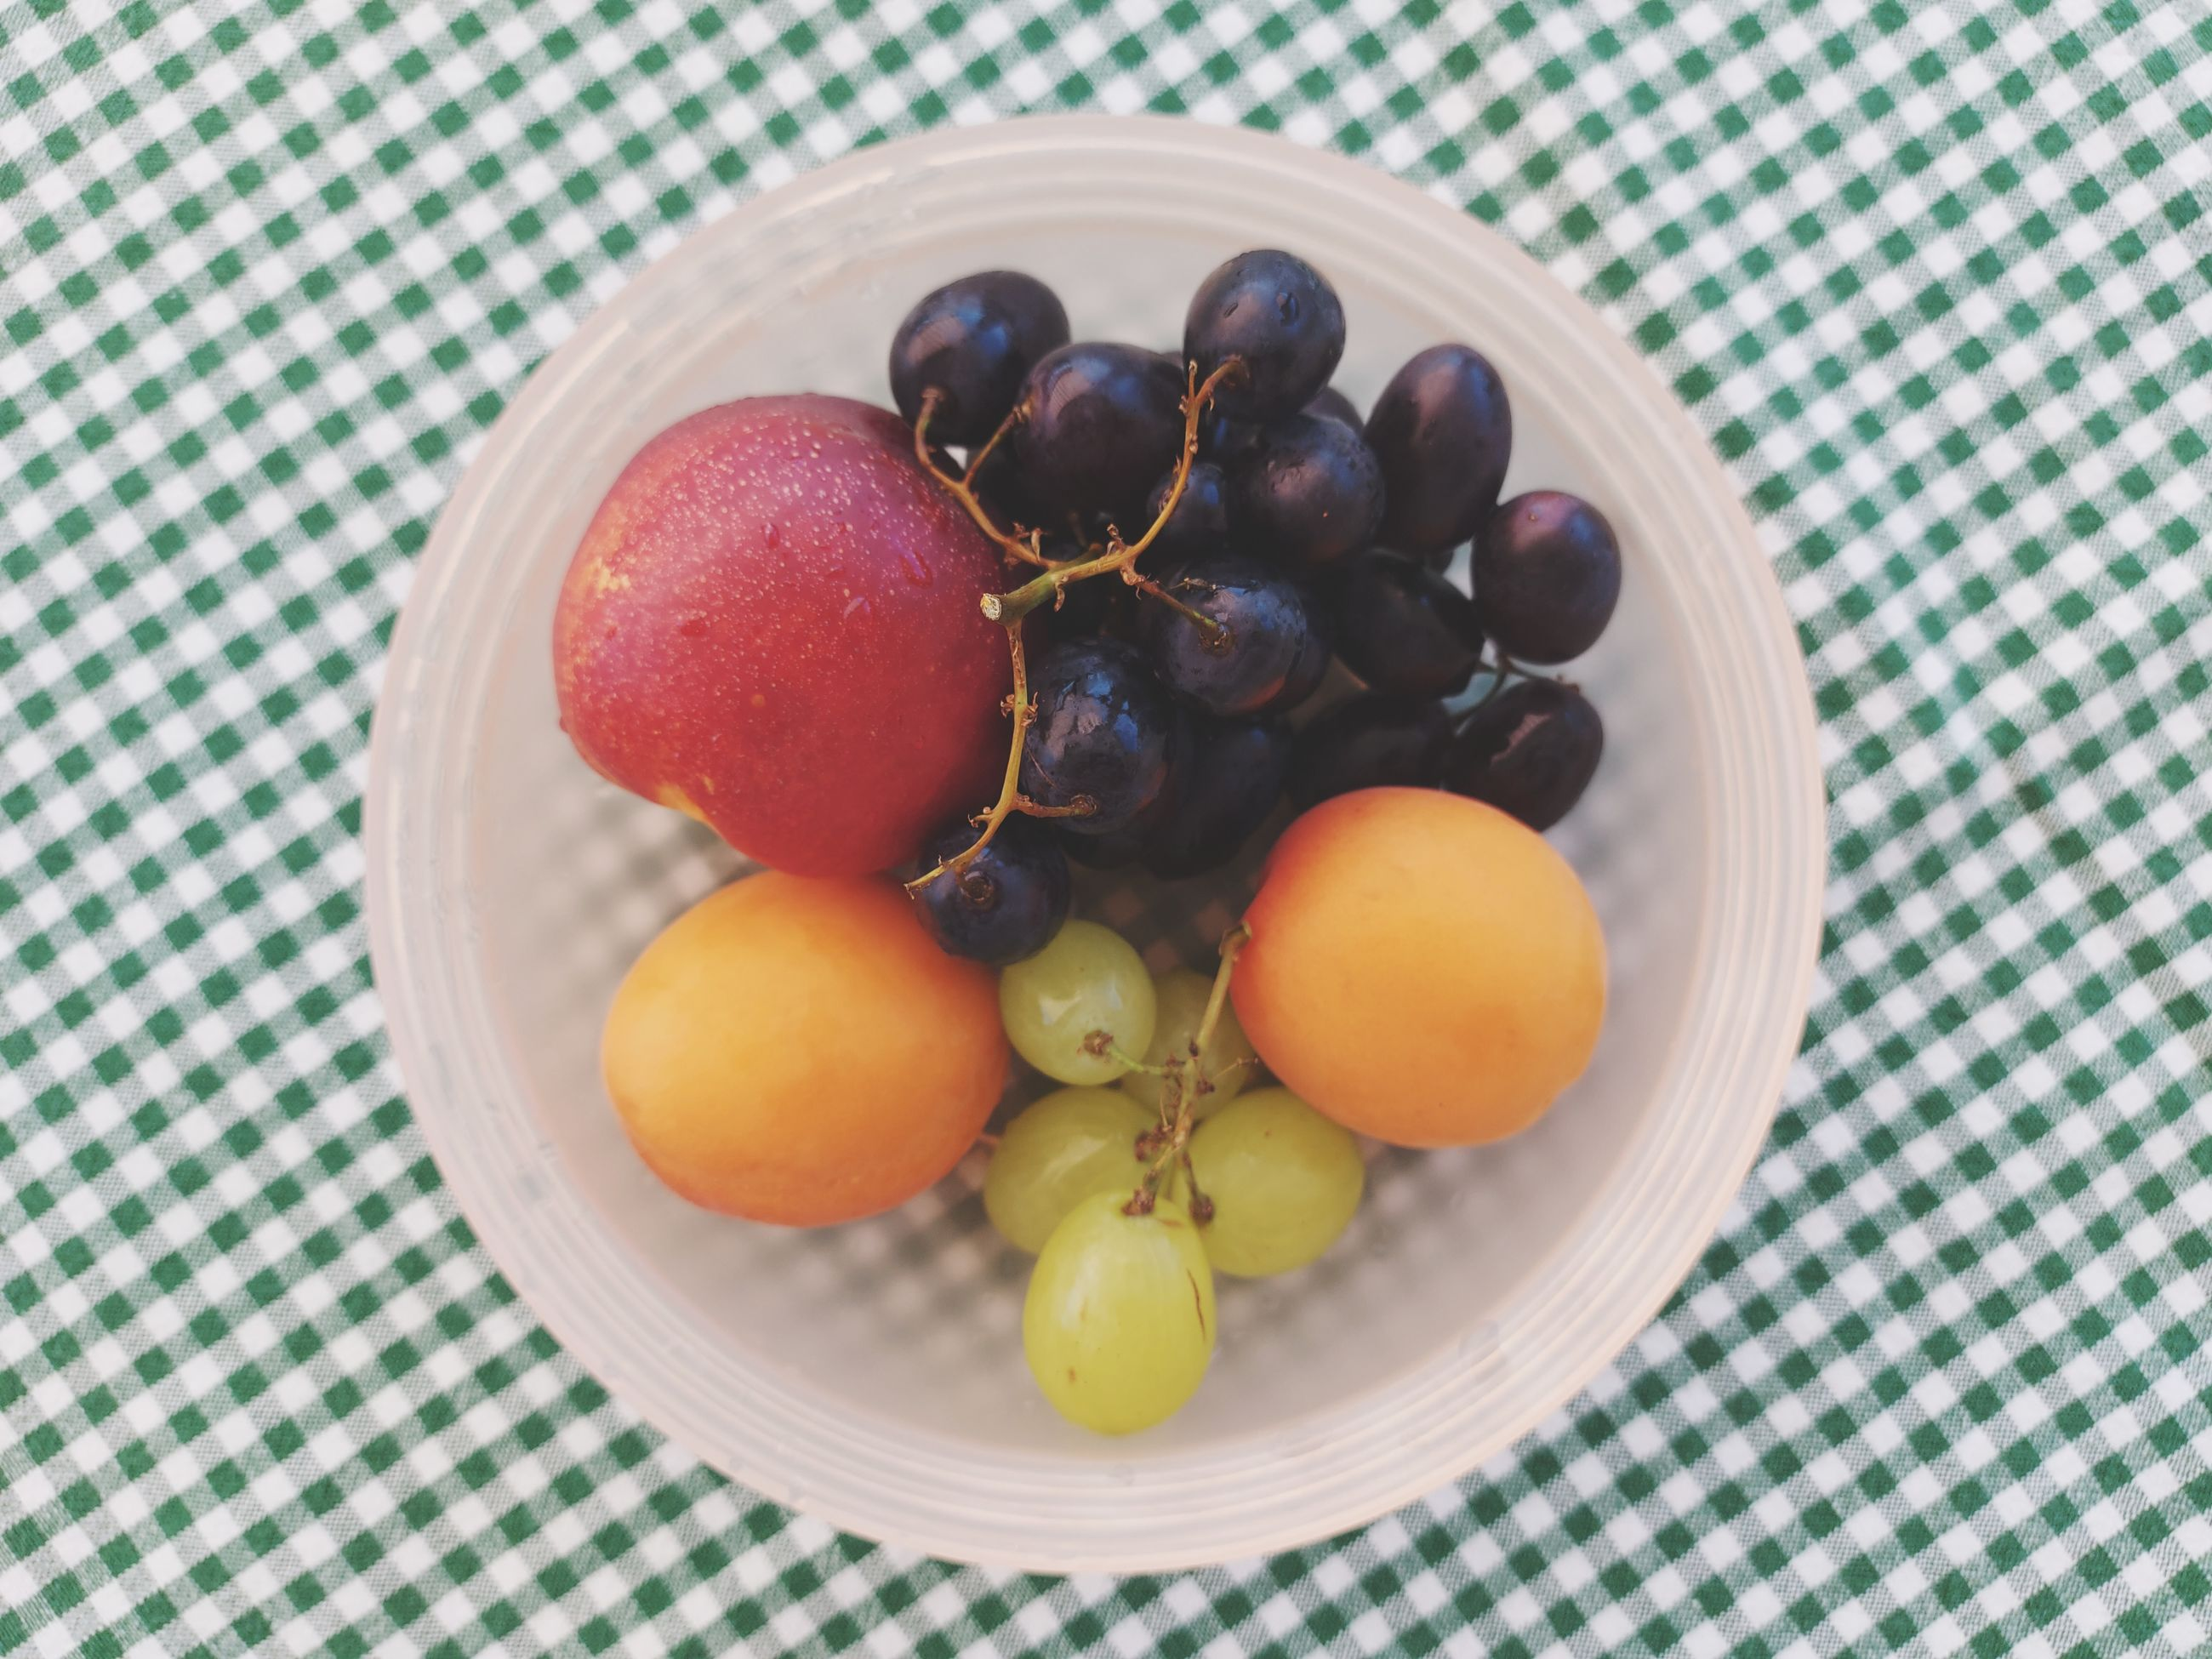 food, food and drink, healthy eating, fruit, wellbeing, freshness, plant, produce, tablecloth, bowl, no people, high angle view, indoors, directly above, still life, sweet food, grape, table, apricot, close-up, checked pattern, berry, plate